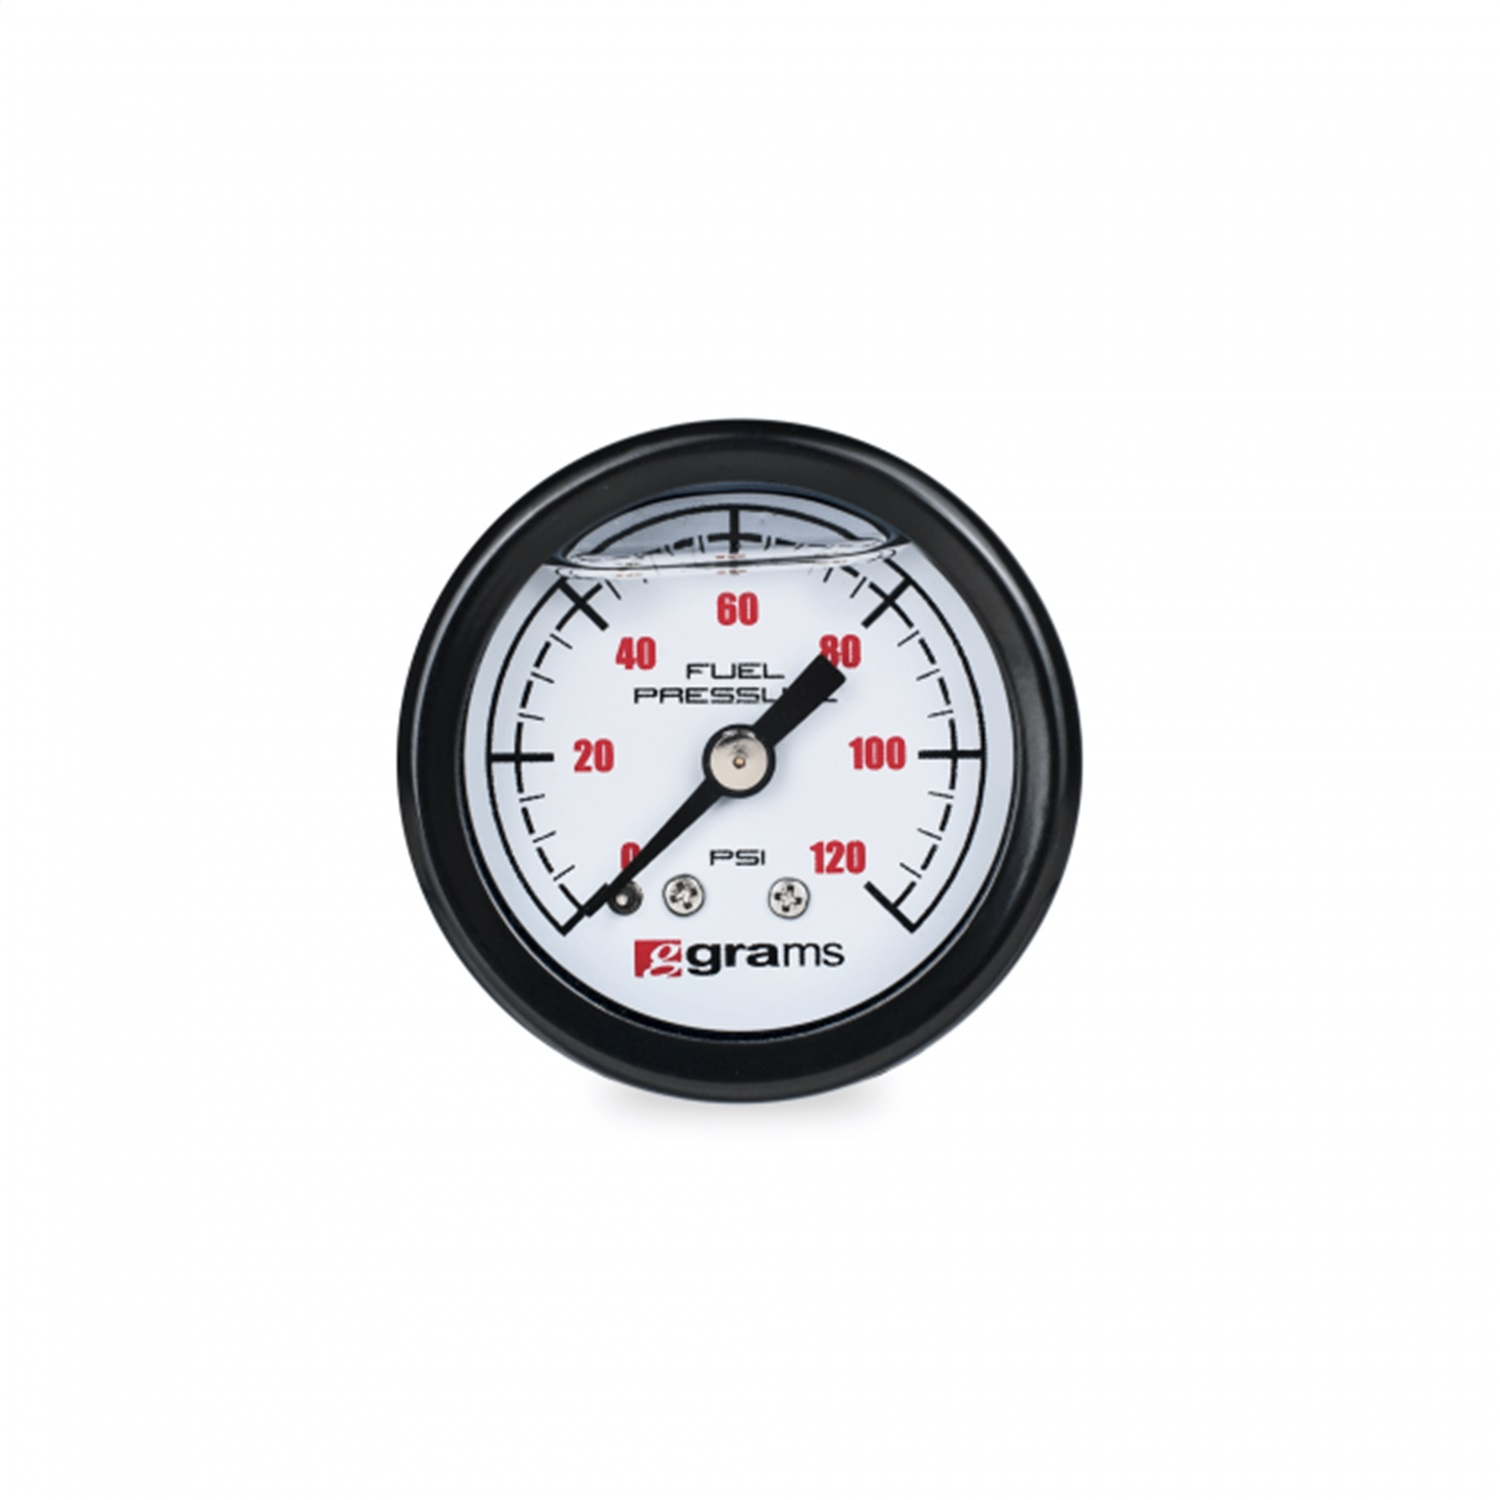 Grams Performance and Design G2-99-1200W Fuel Pressure Gauge